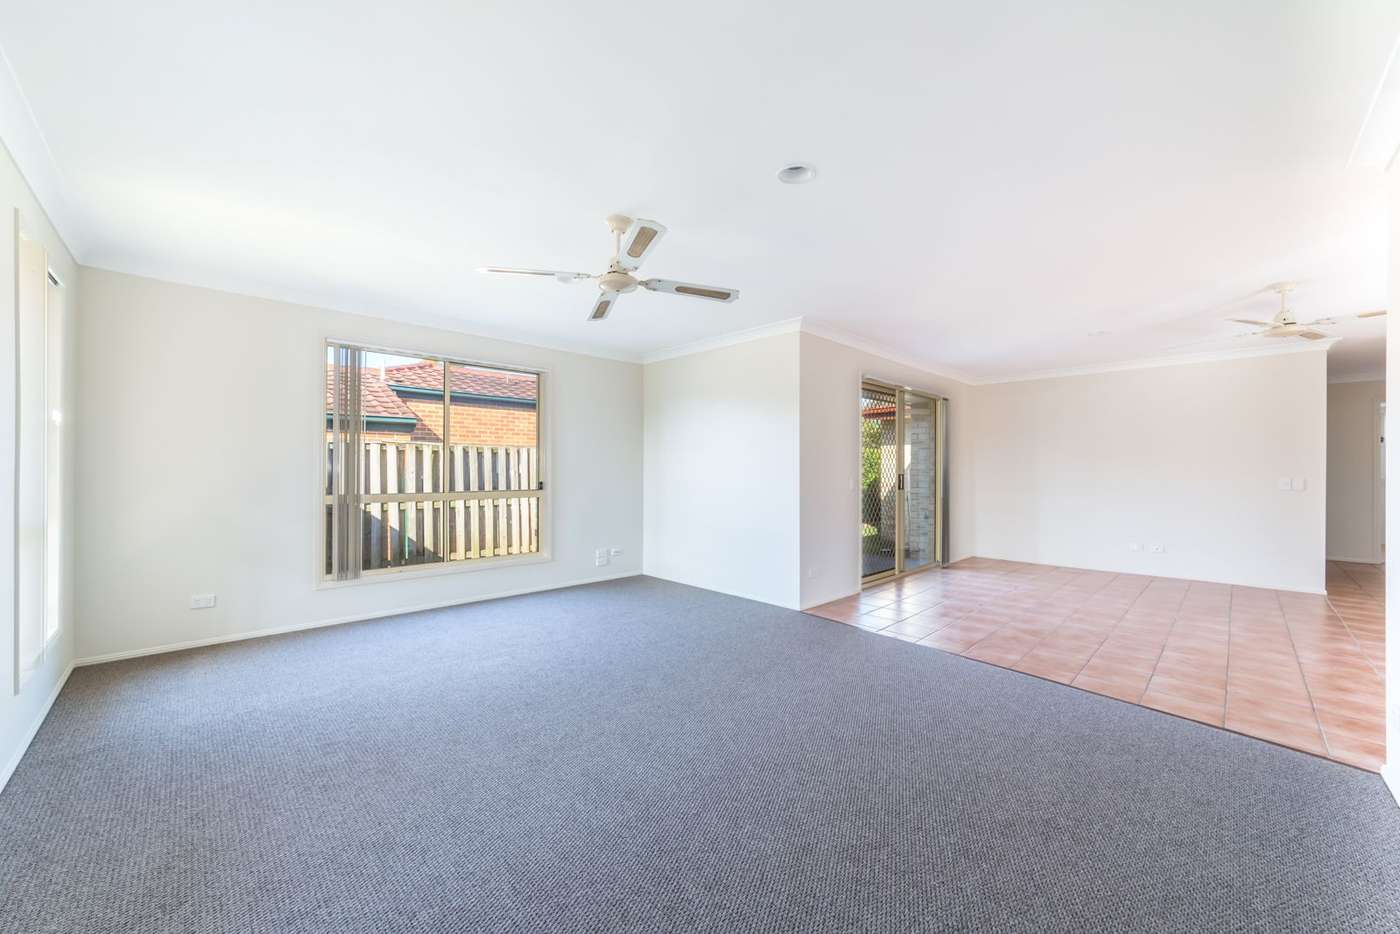 Sixth view of Homely house listing, 7 Carino Court, Merrimac QLD 4226